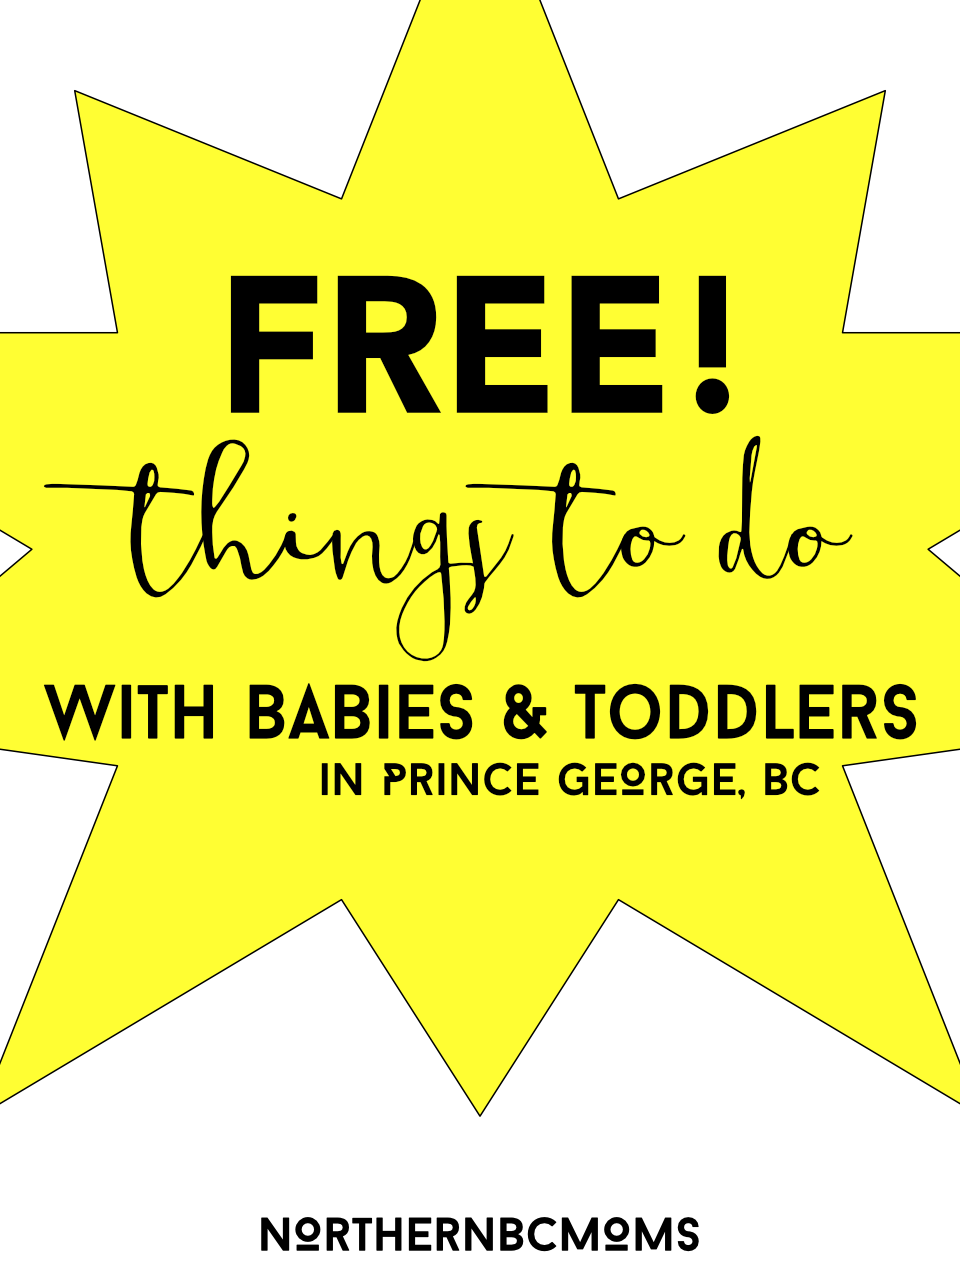 Free Things to Do with Babies and Toddlers in Prince George, BC